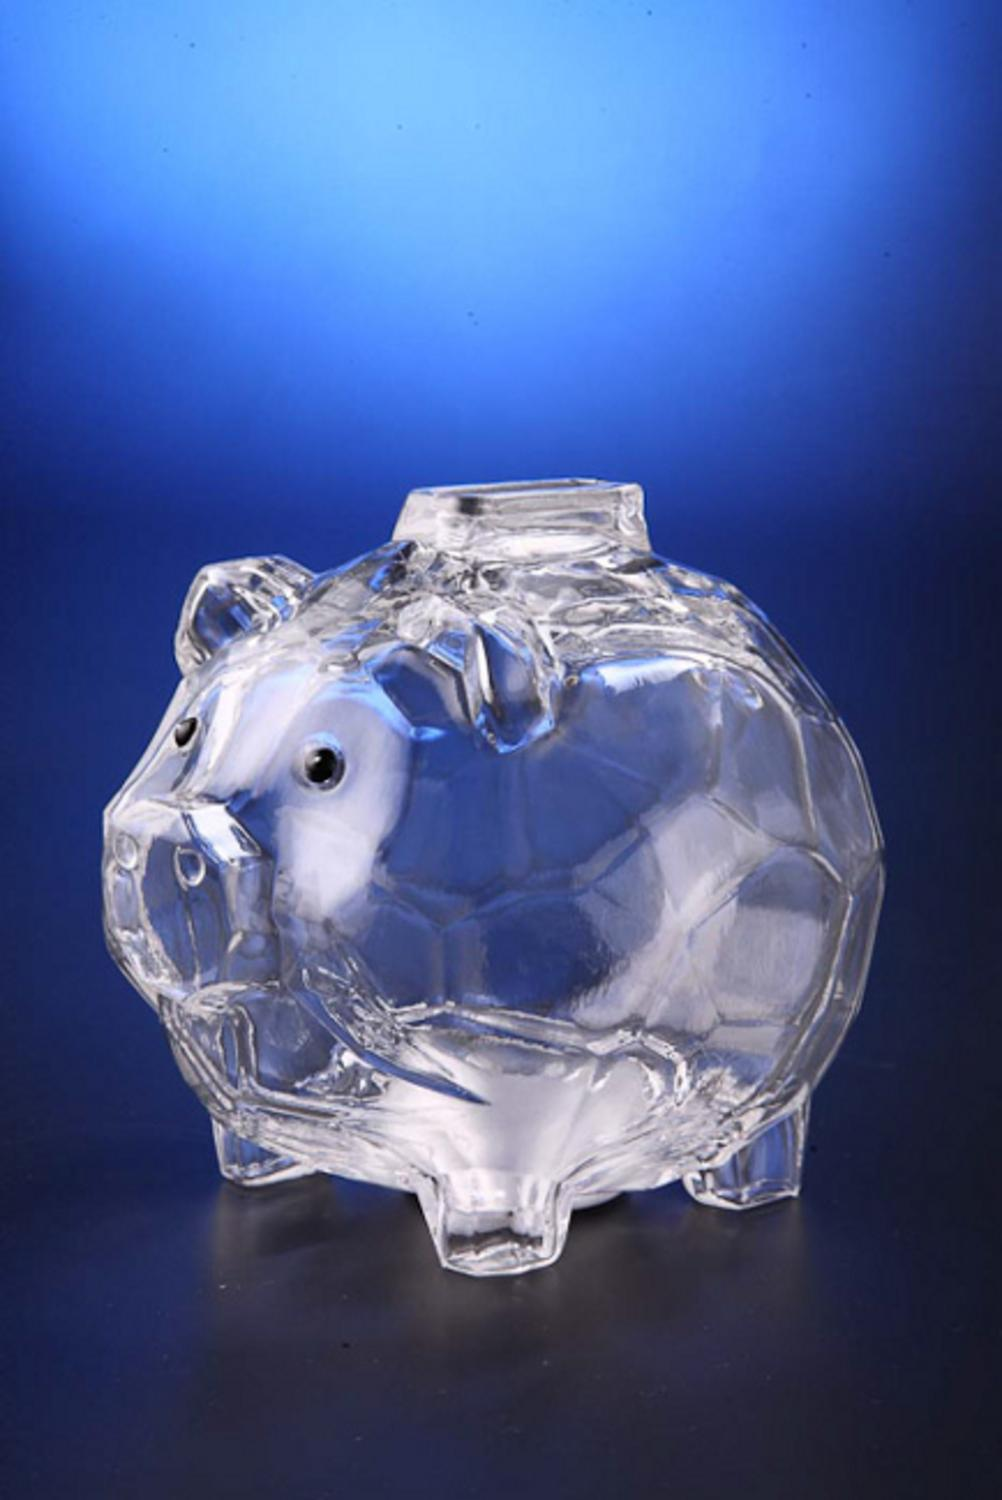 "Pack of 6 Icy Crystal Decorative Functional Piggy Bank with Removable Plug 4.5"" by CC Christmas Decor"